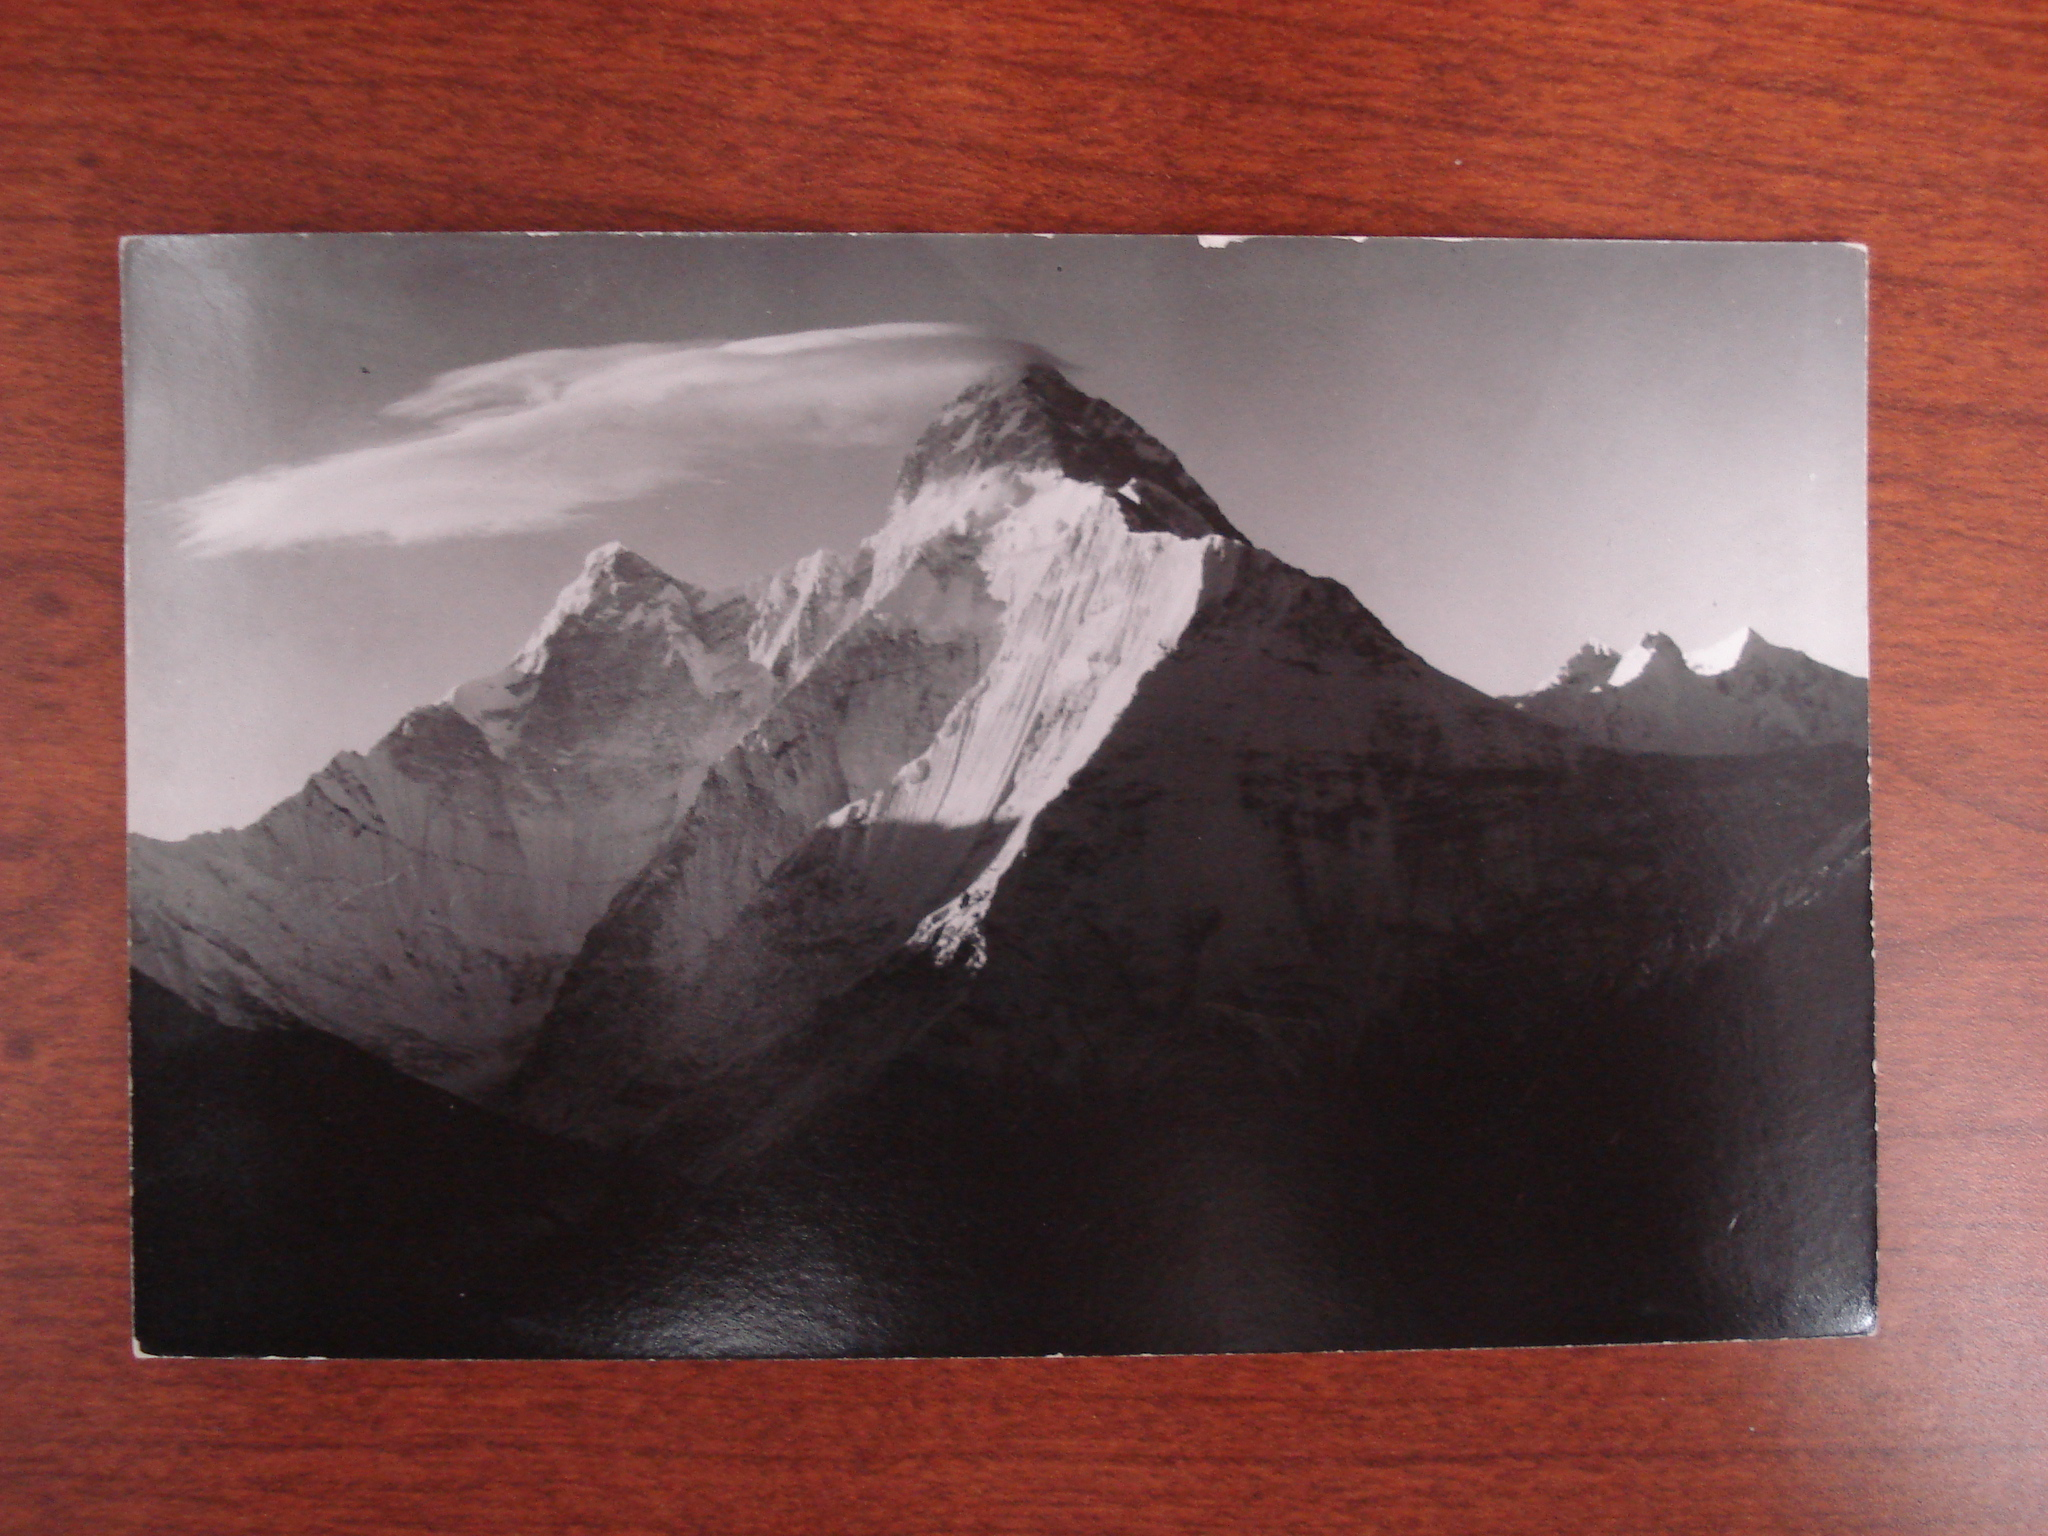 Nanda Devi postcard (front), featuring the mountain